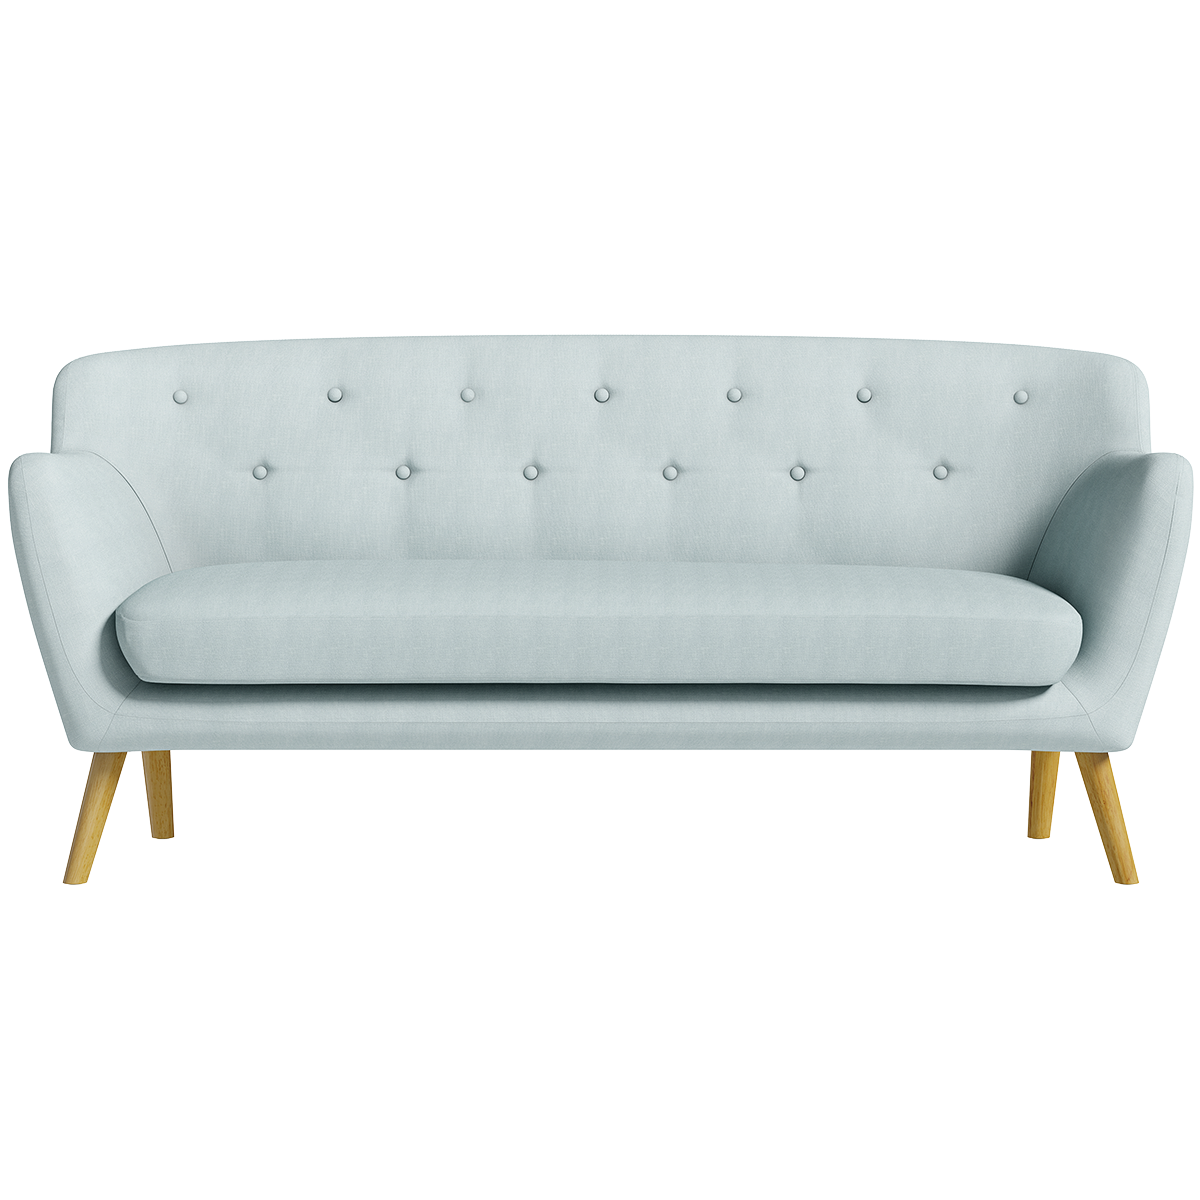 Holborn Large Sofa - Duck Egg Blue